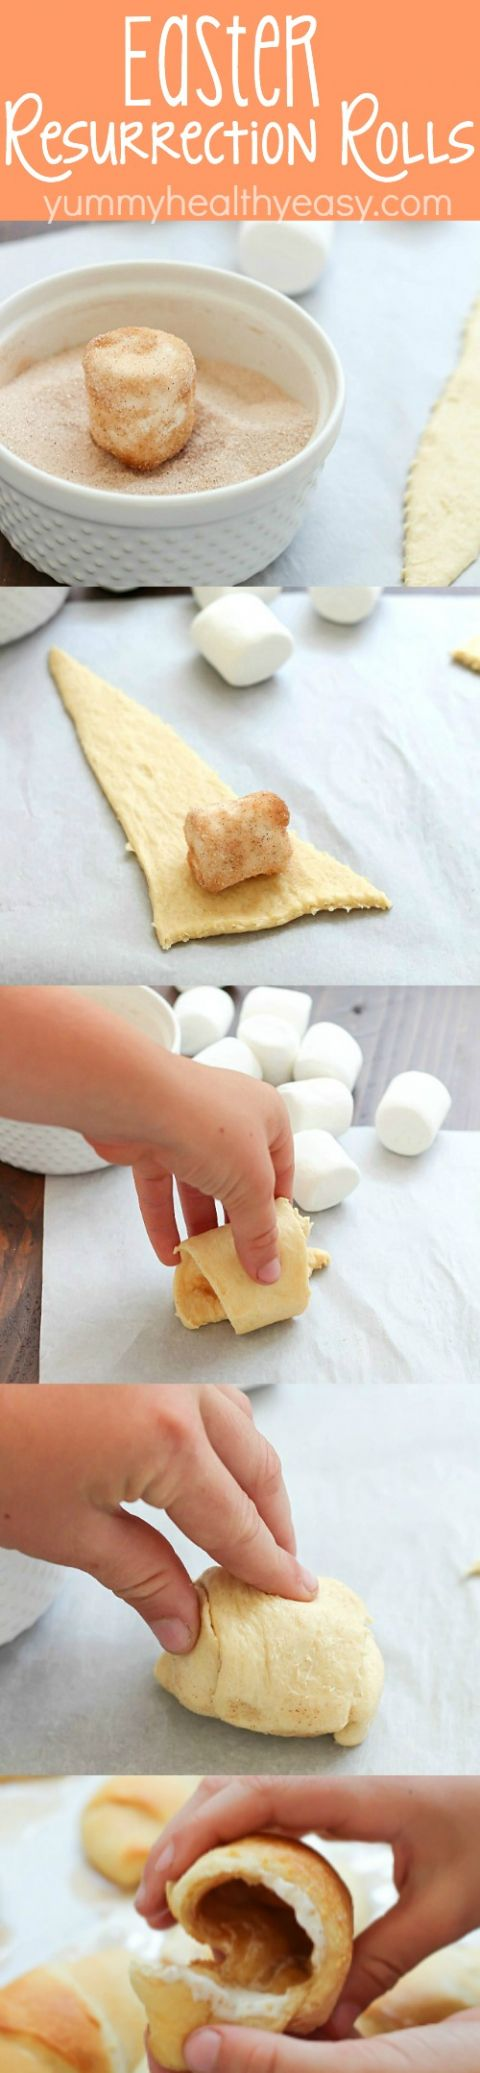 Eater Resurrection Rolls - aka Disappearing Marshmallow Rolls! A fun Easter treat that teaches children (and adults!) the real reason behind the holiday of Easter. These resurrection rolls are so easy to make and absolutely delicious!